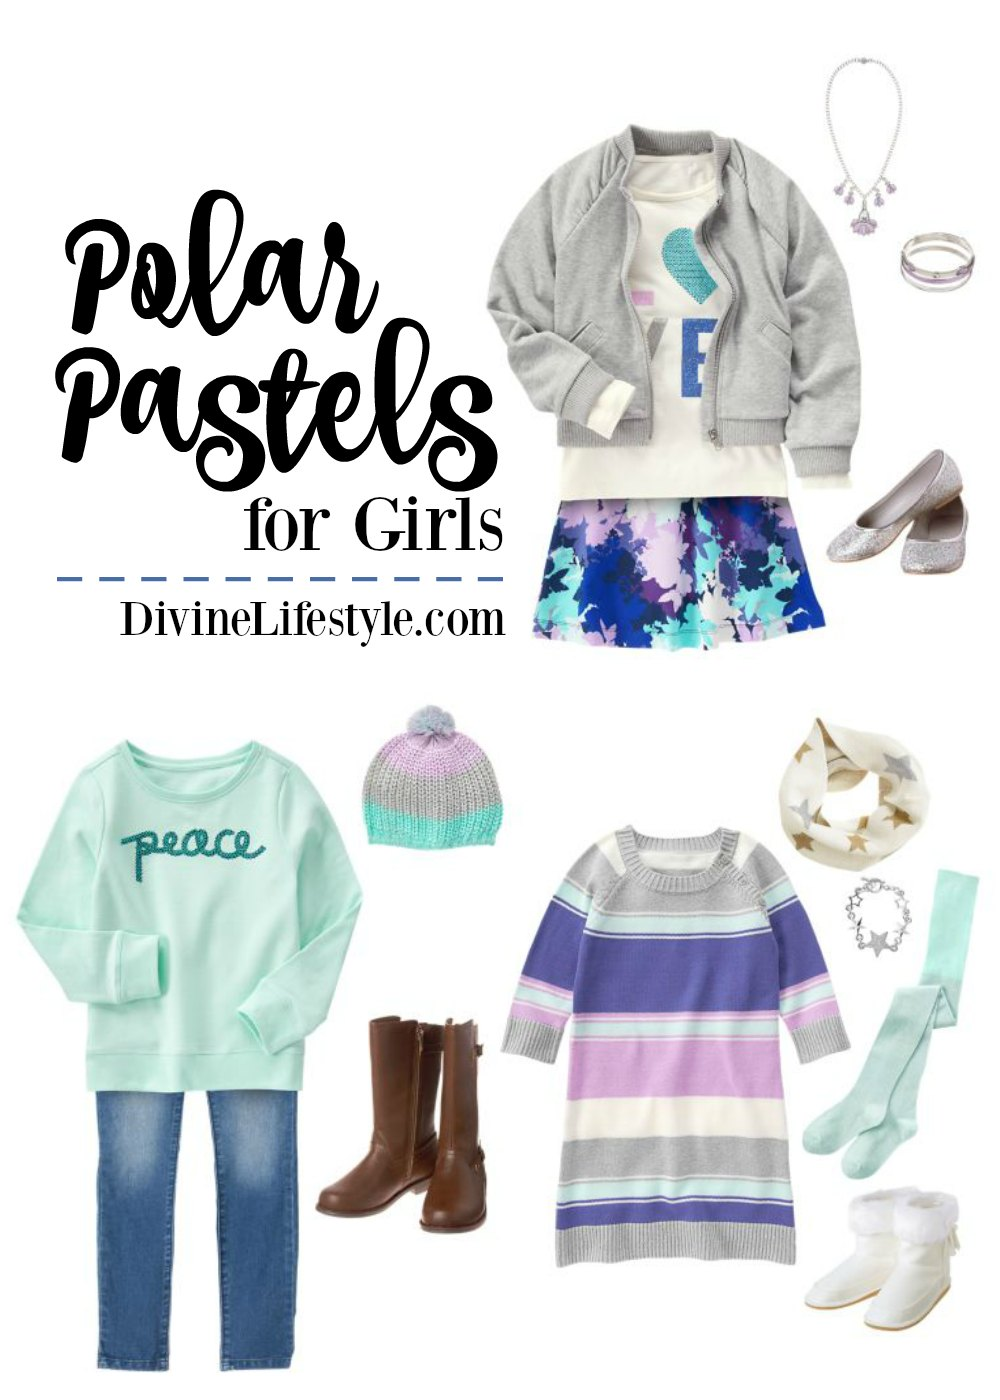 Polar Pastels for Girls